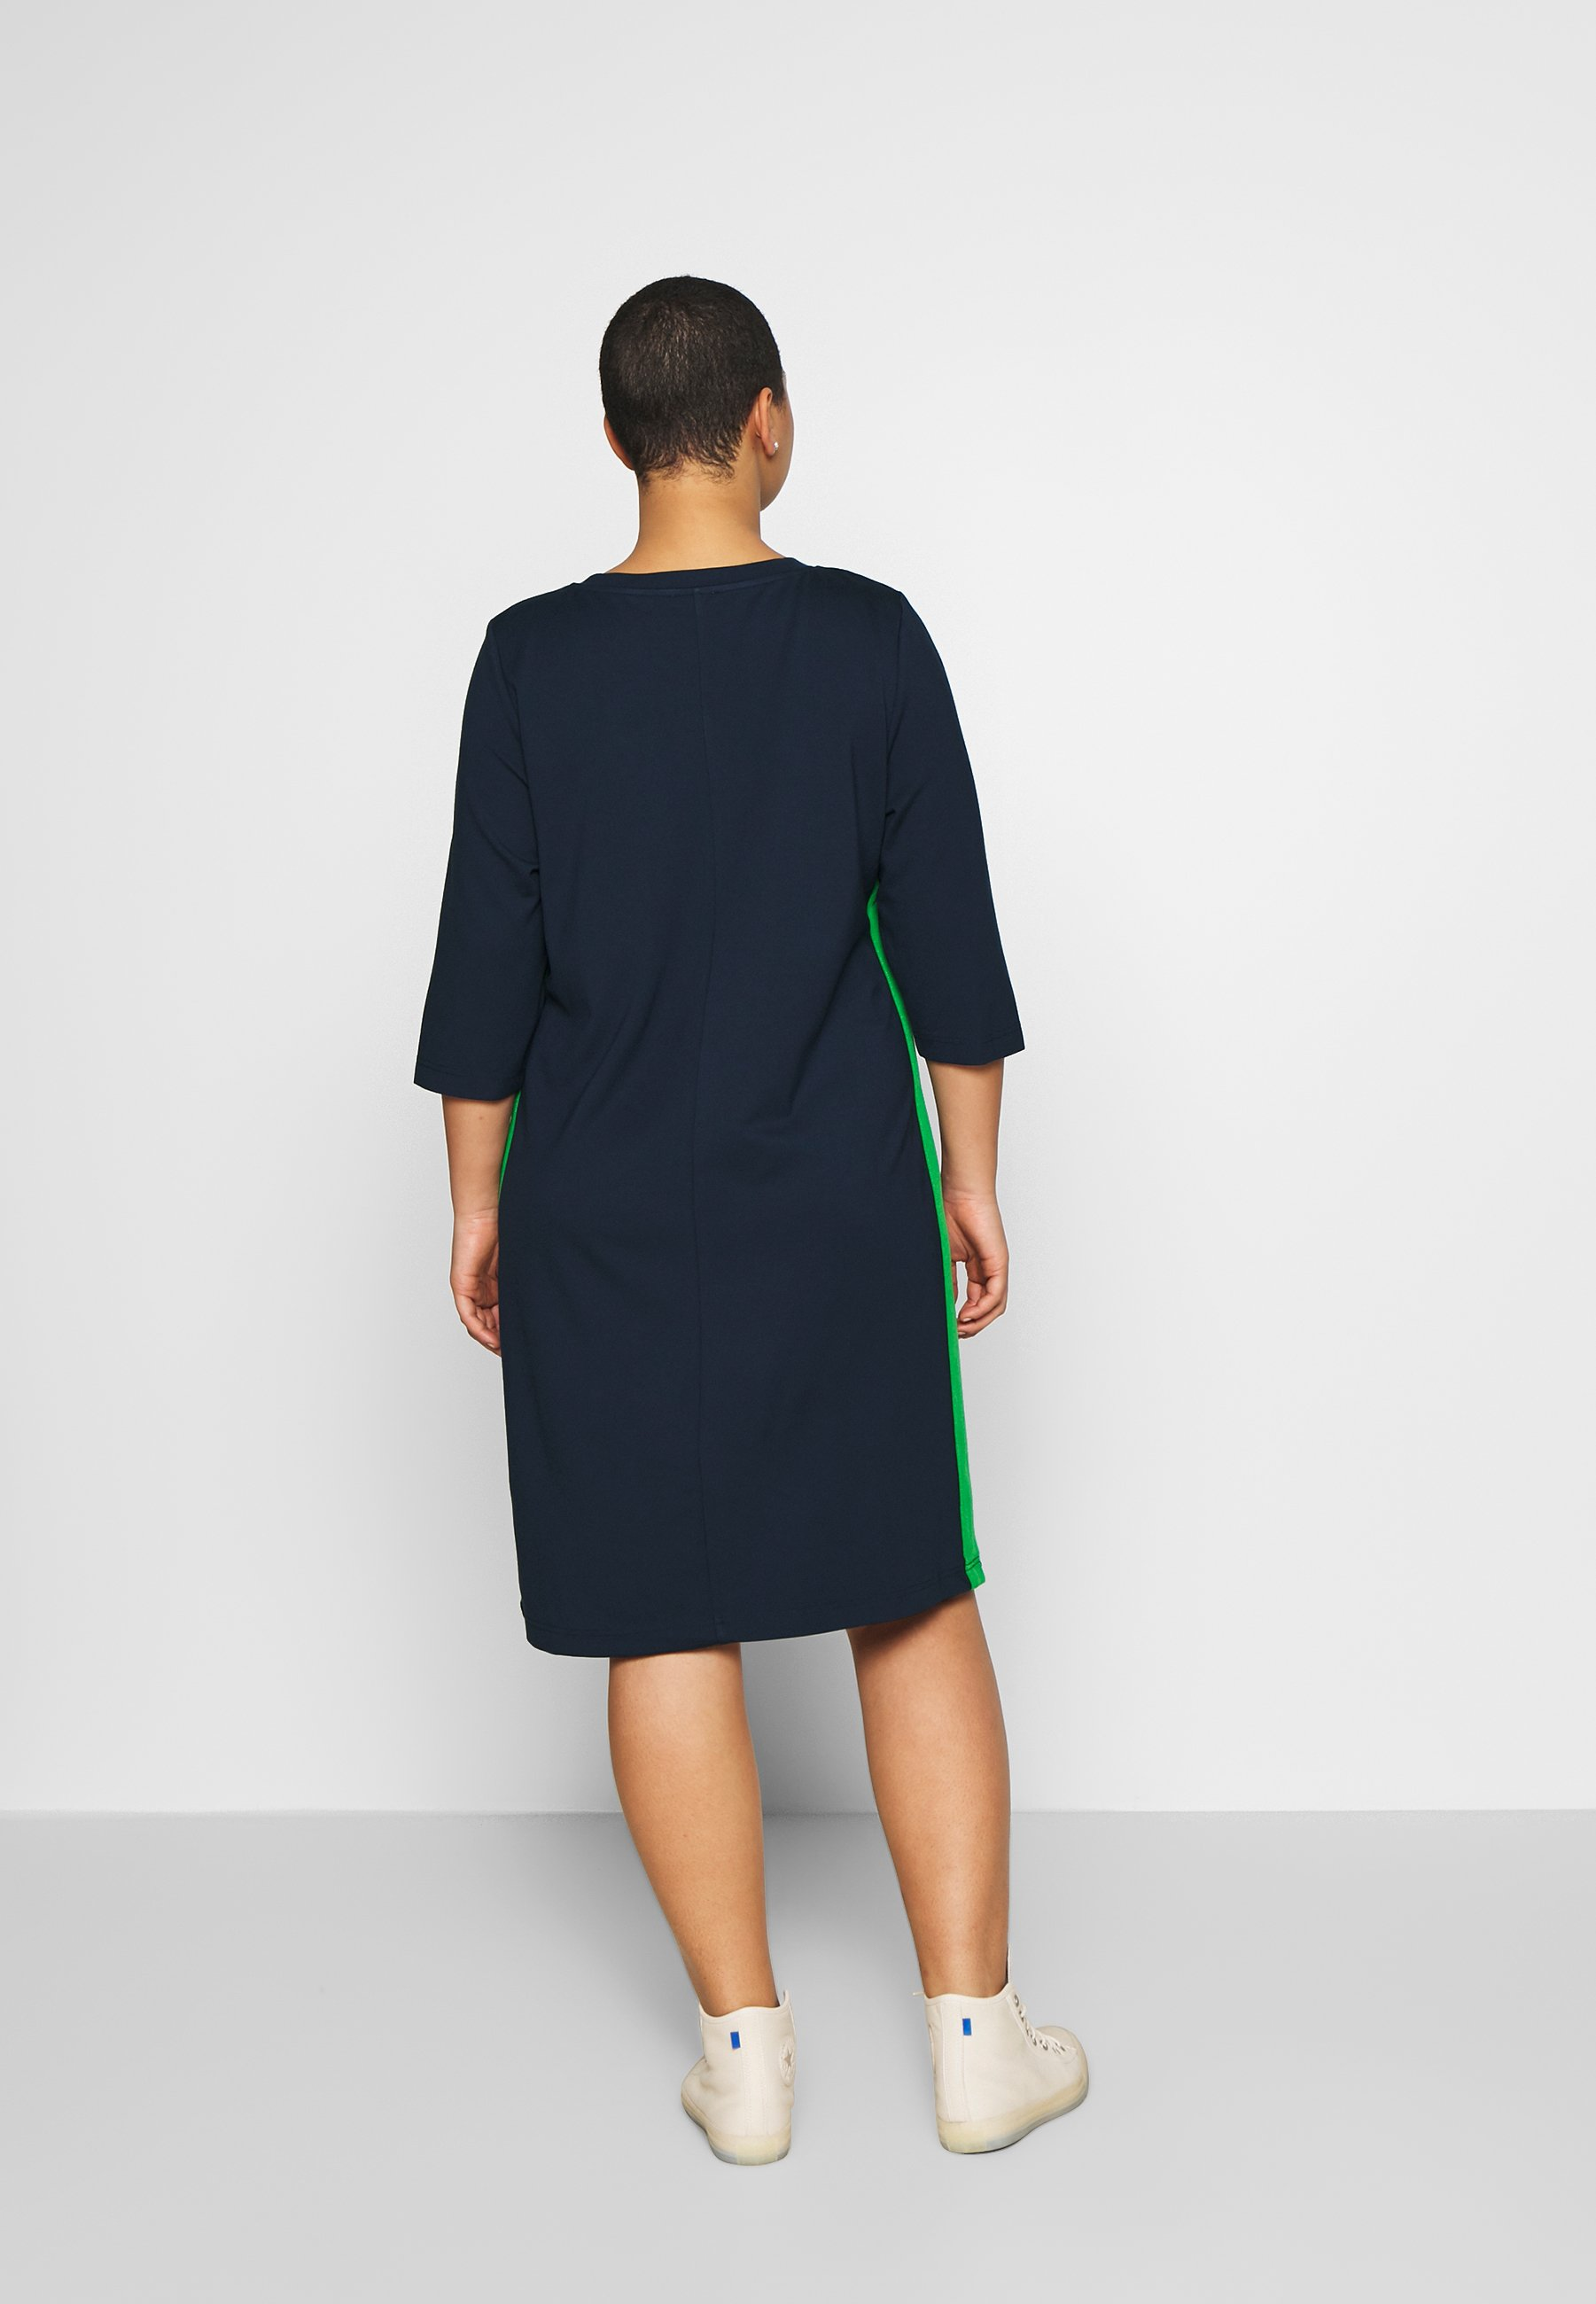 My True Me Tom Tailor Shift Dress - Jersey Real Navy Blue